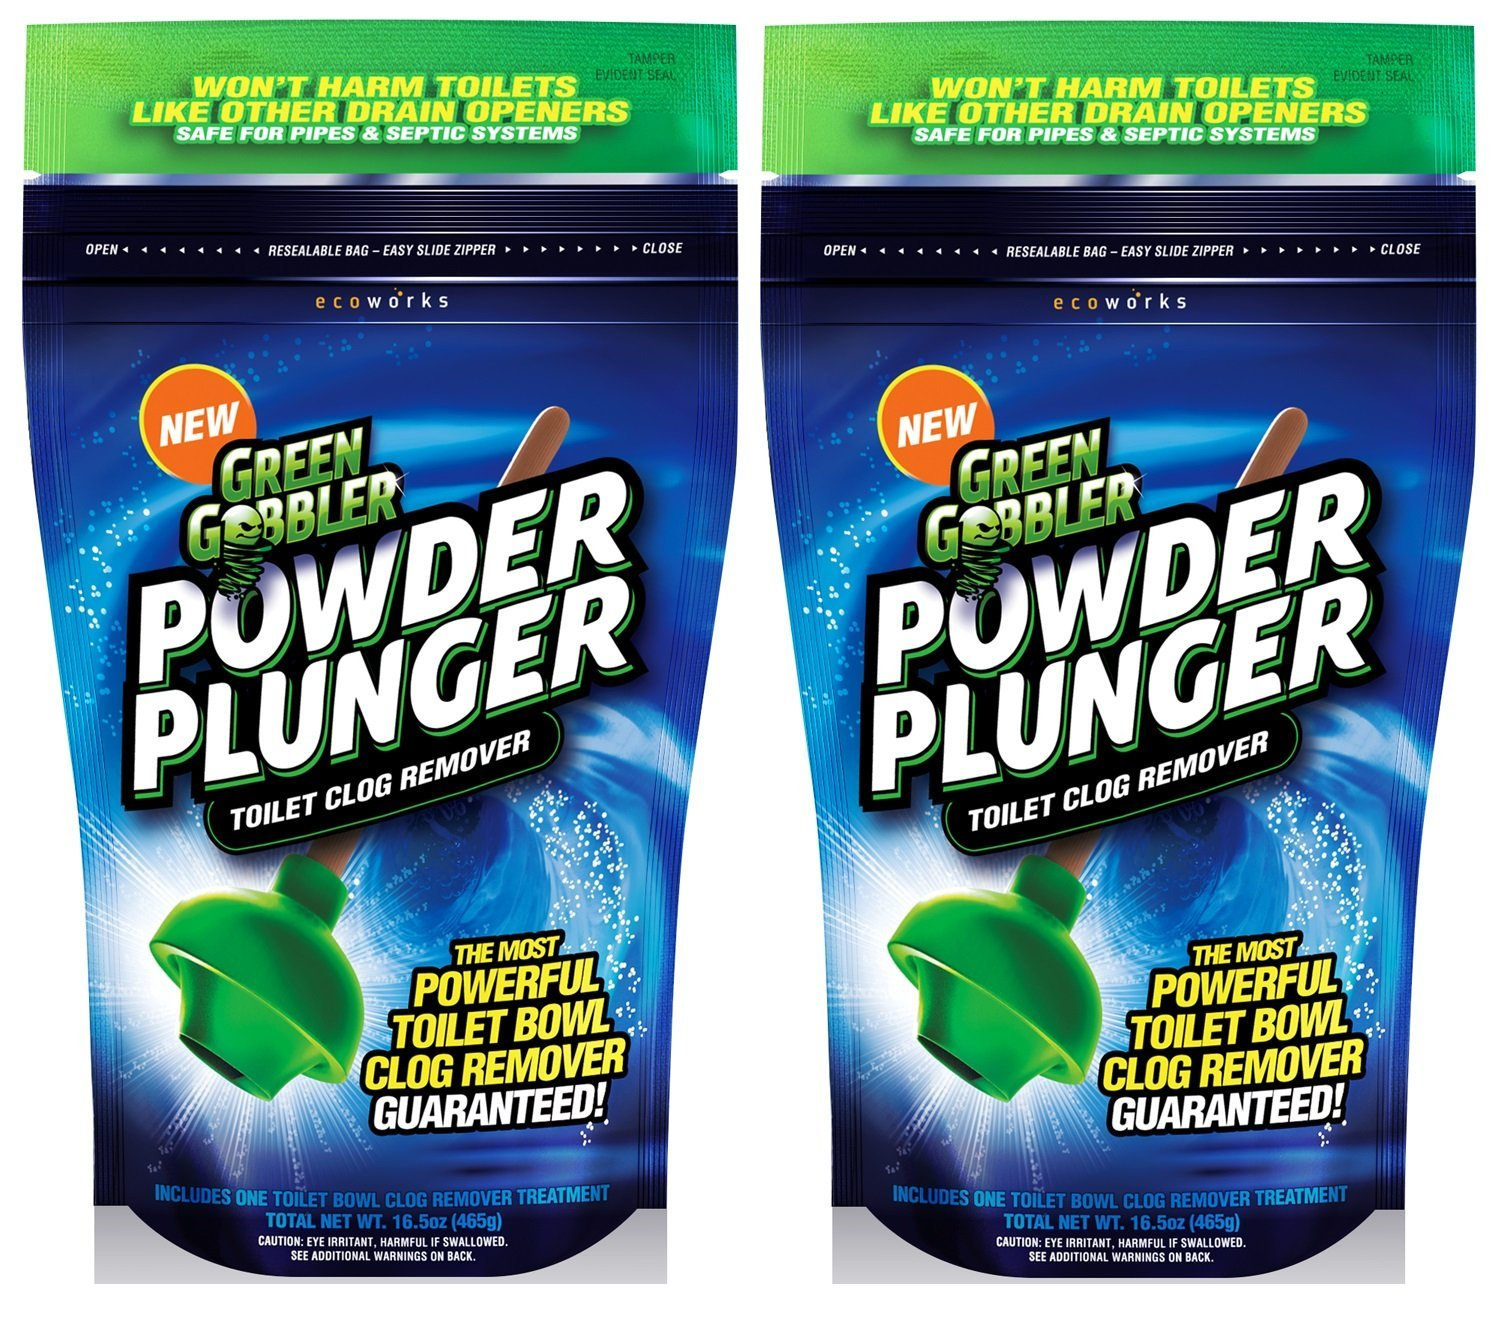 Green Gobbler GGPPTCRPOWDER PLUNGER Toilet Bowl Clog Remover - 2 Pack Net WT 16.5 oz